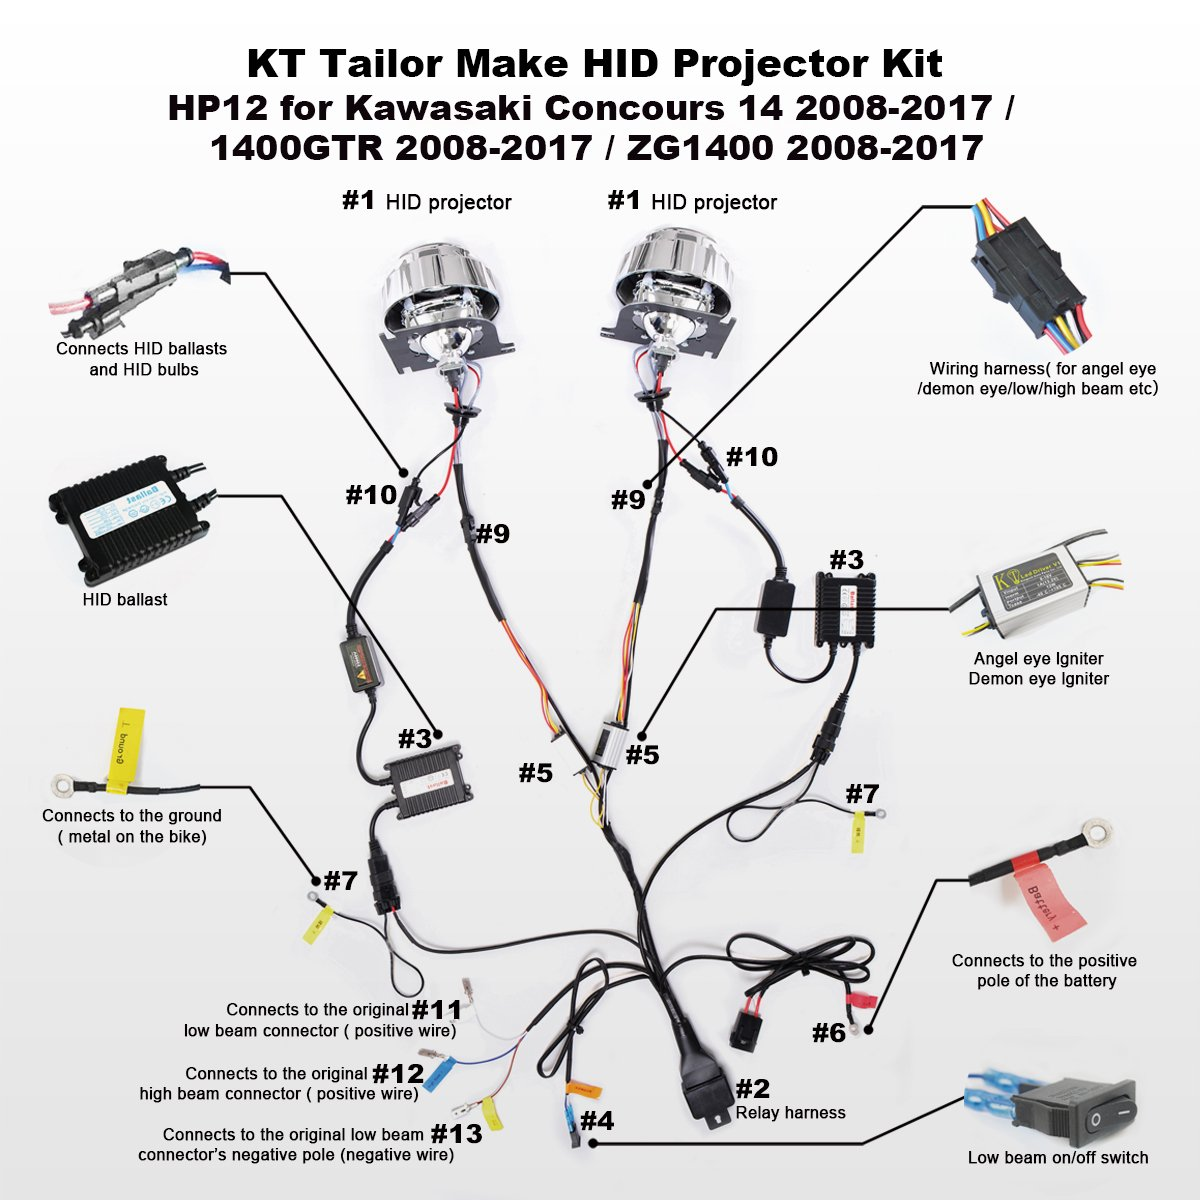 Amazon.com: KT Tailor-Made HID Projector Kit HP12 for ... on